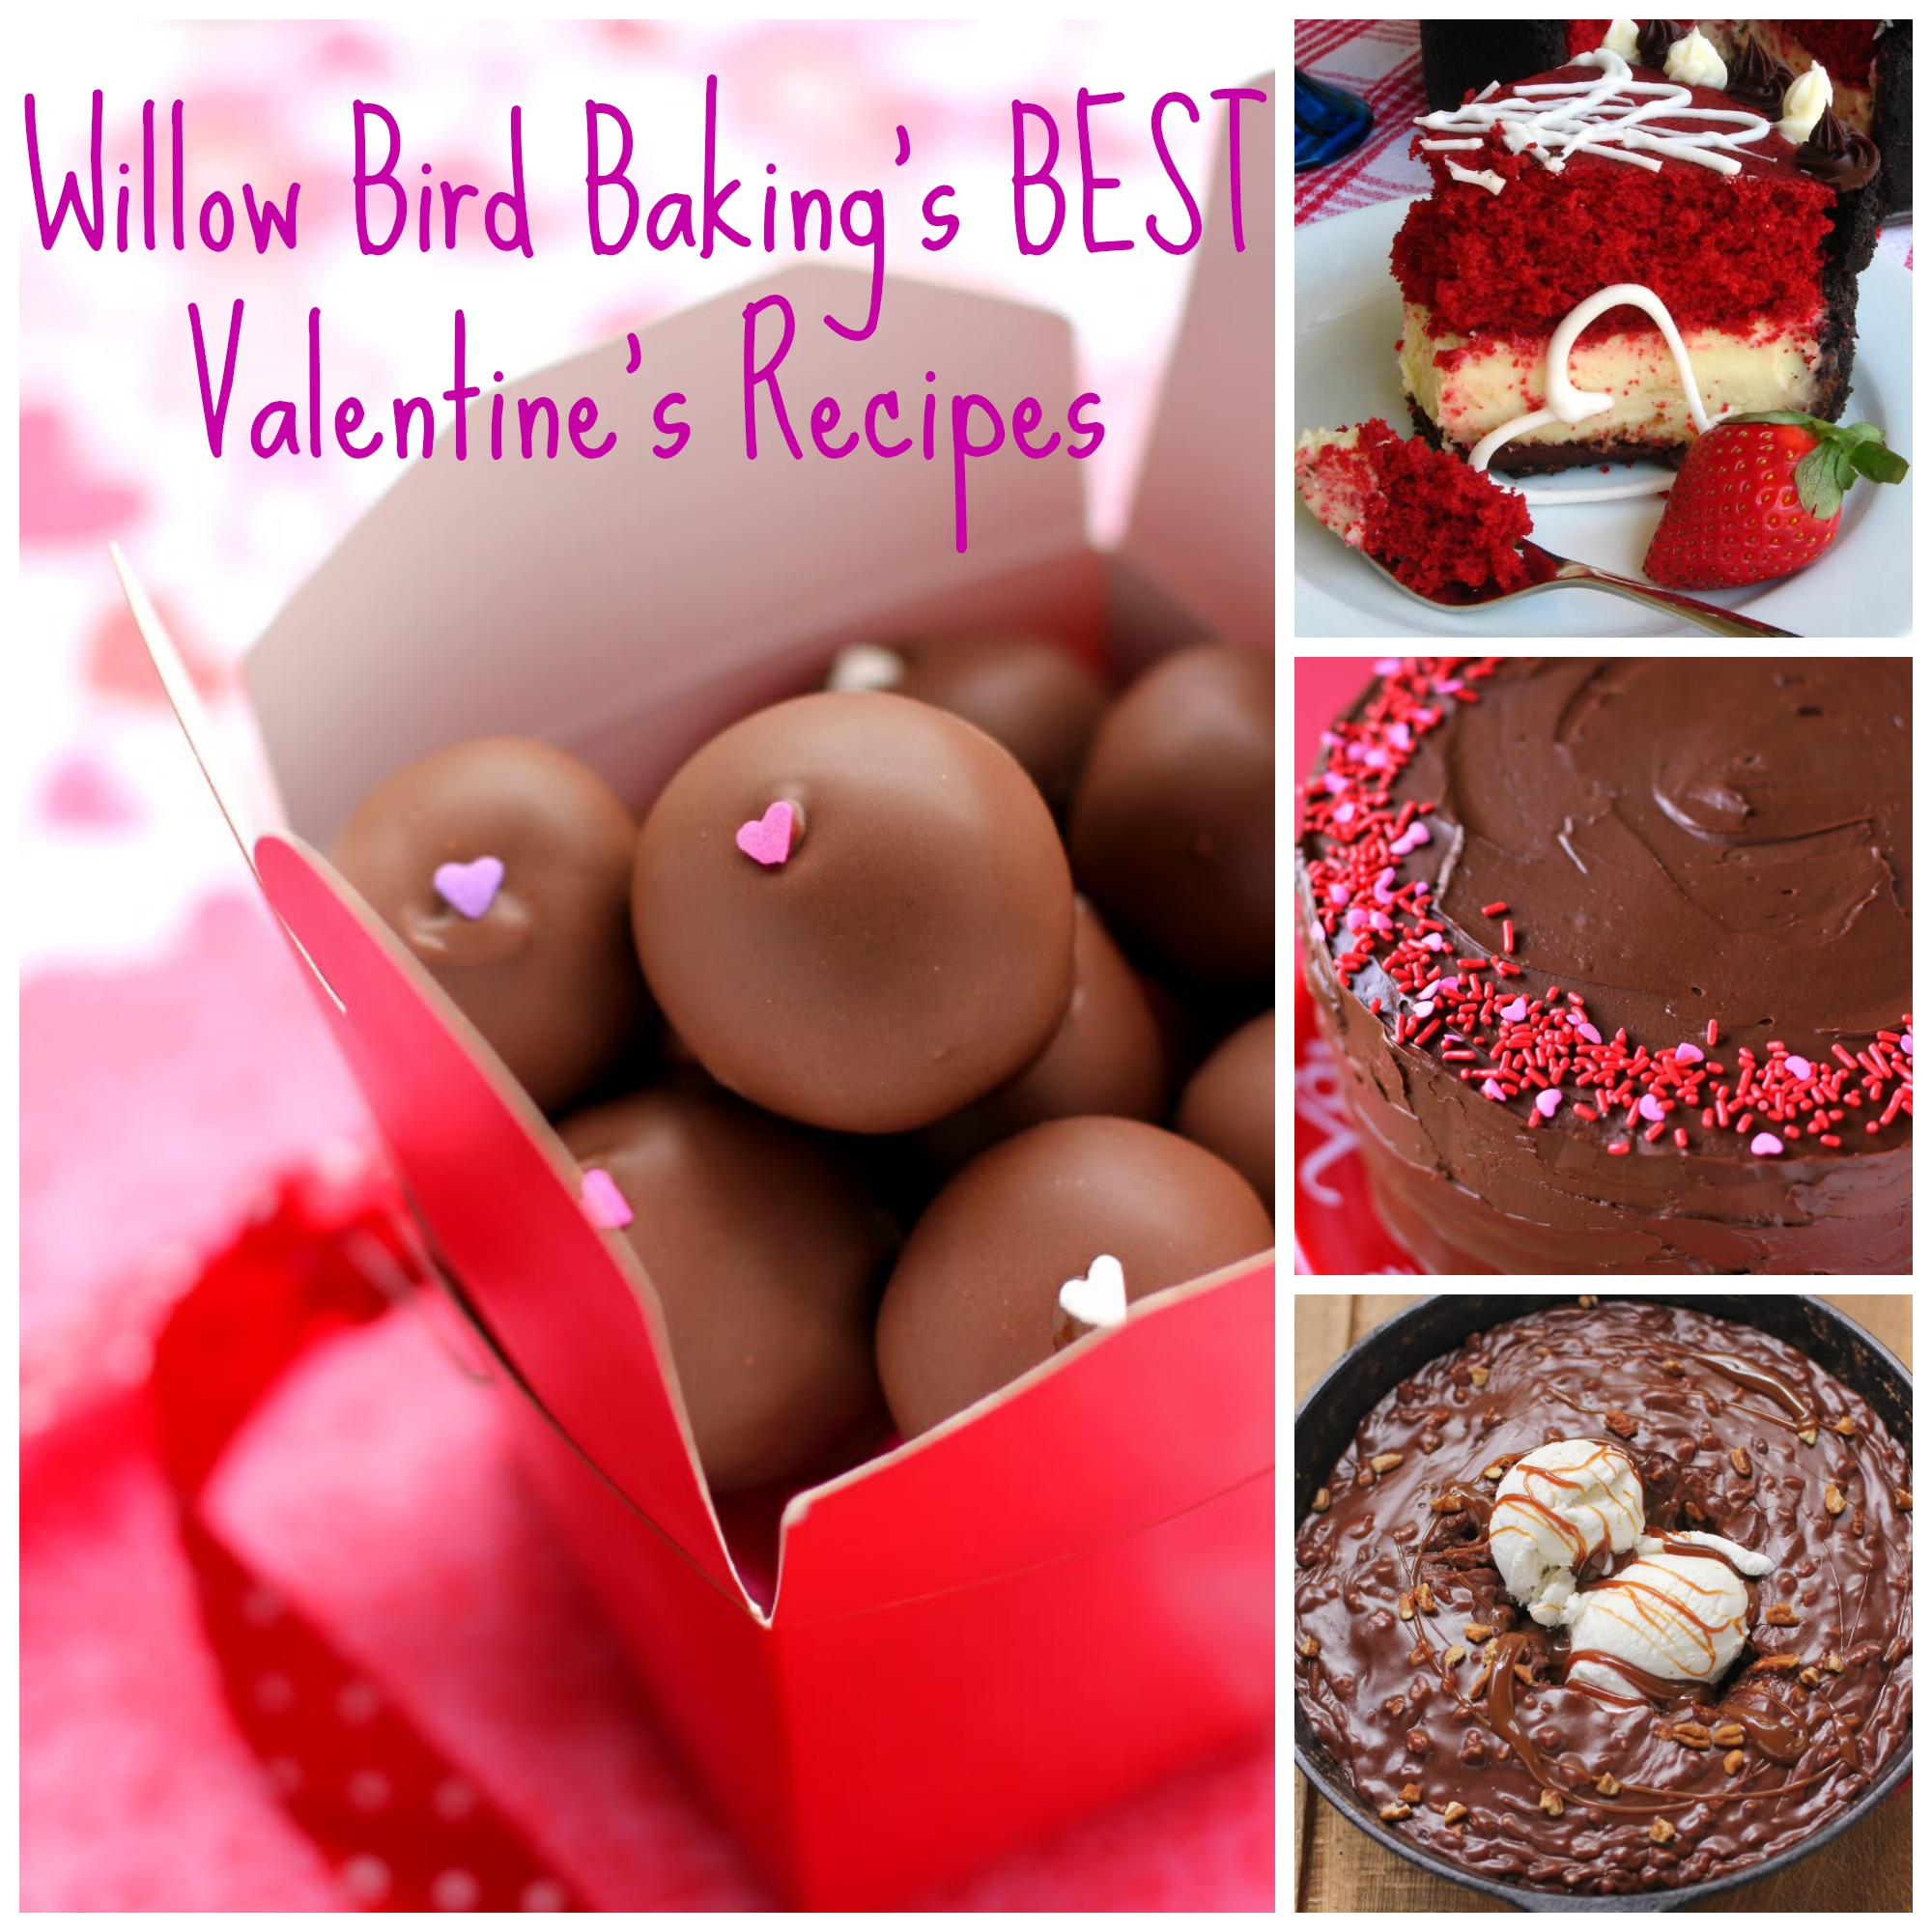 The BEST Valentine's Day Recipes from Willow Bird Baking